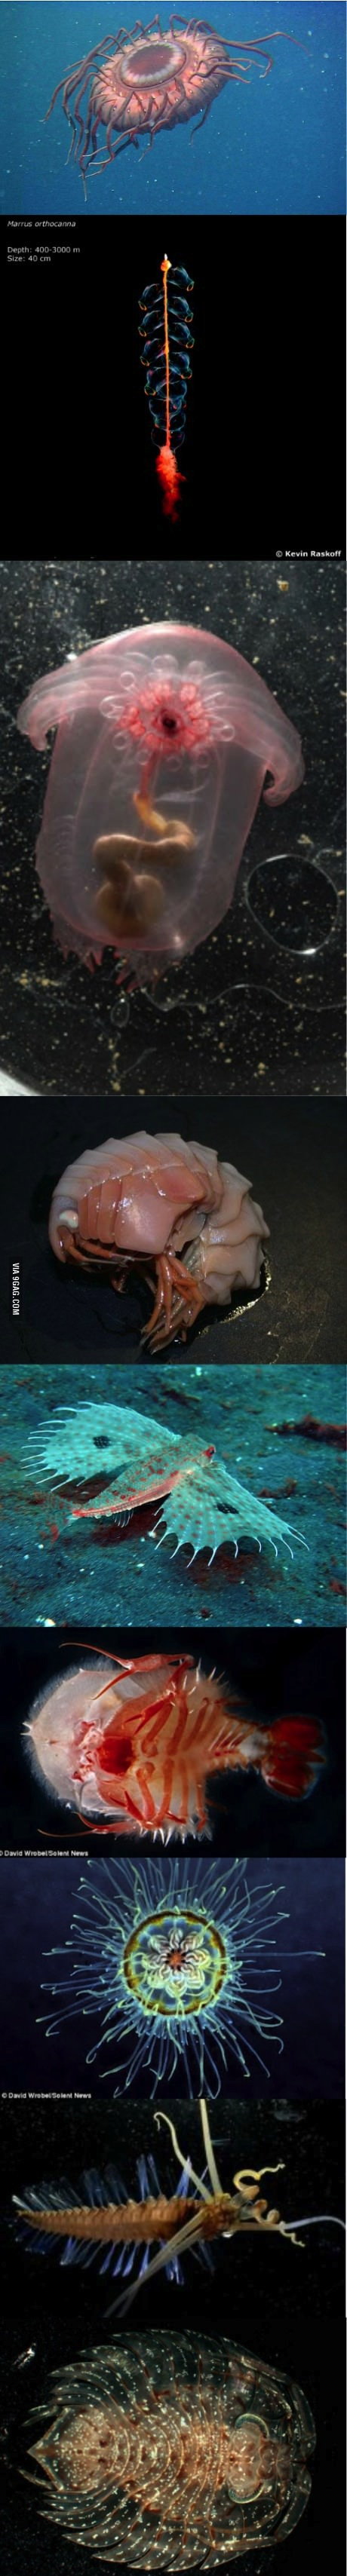 deep sea creatures, compilation, cool, fish, shellfish